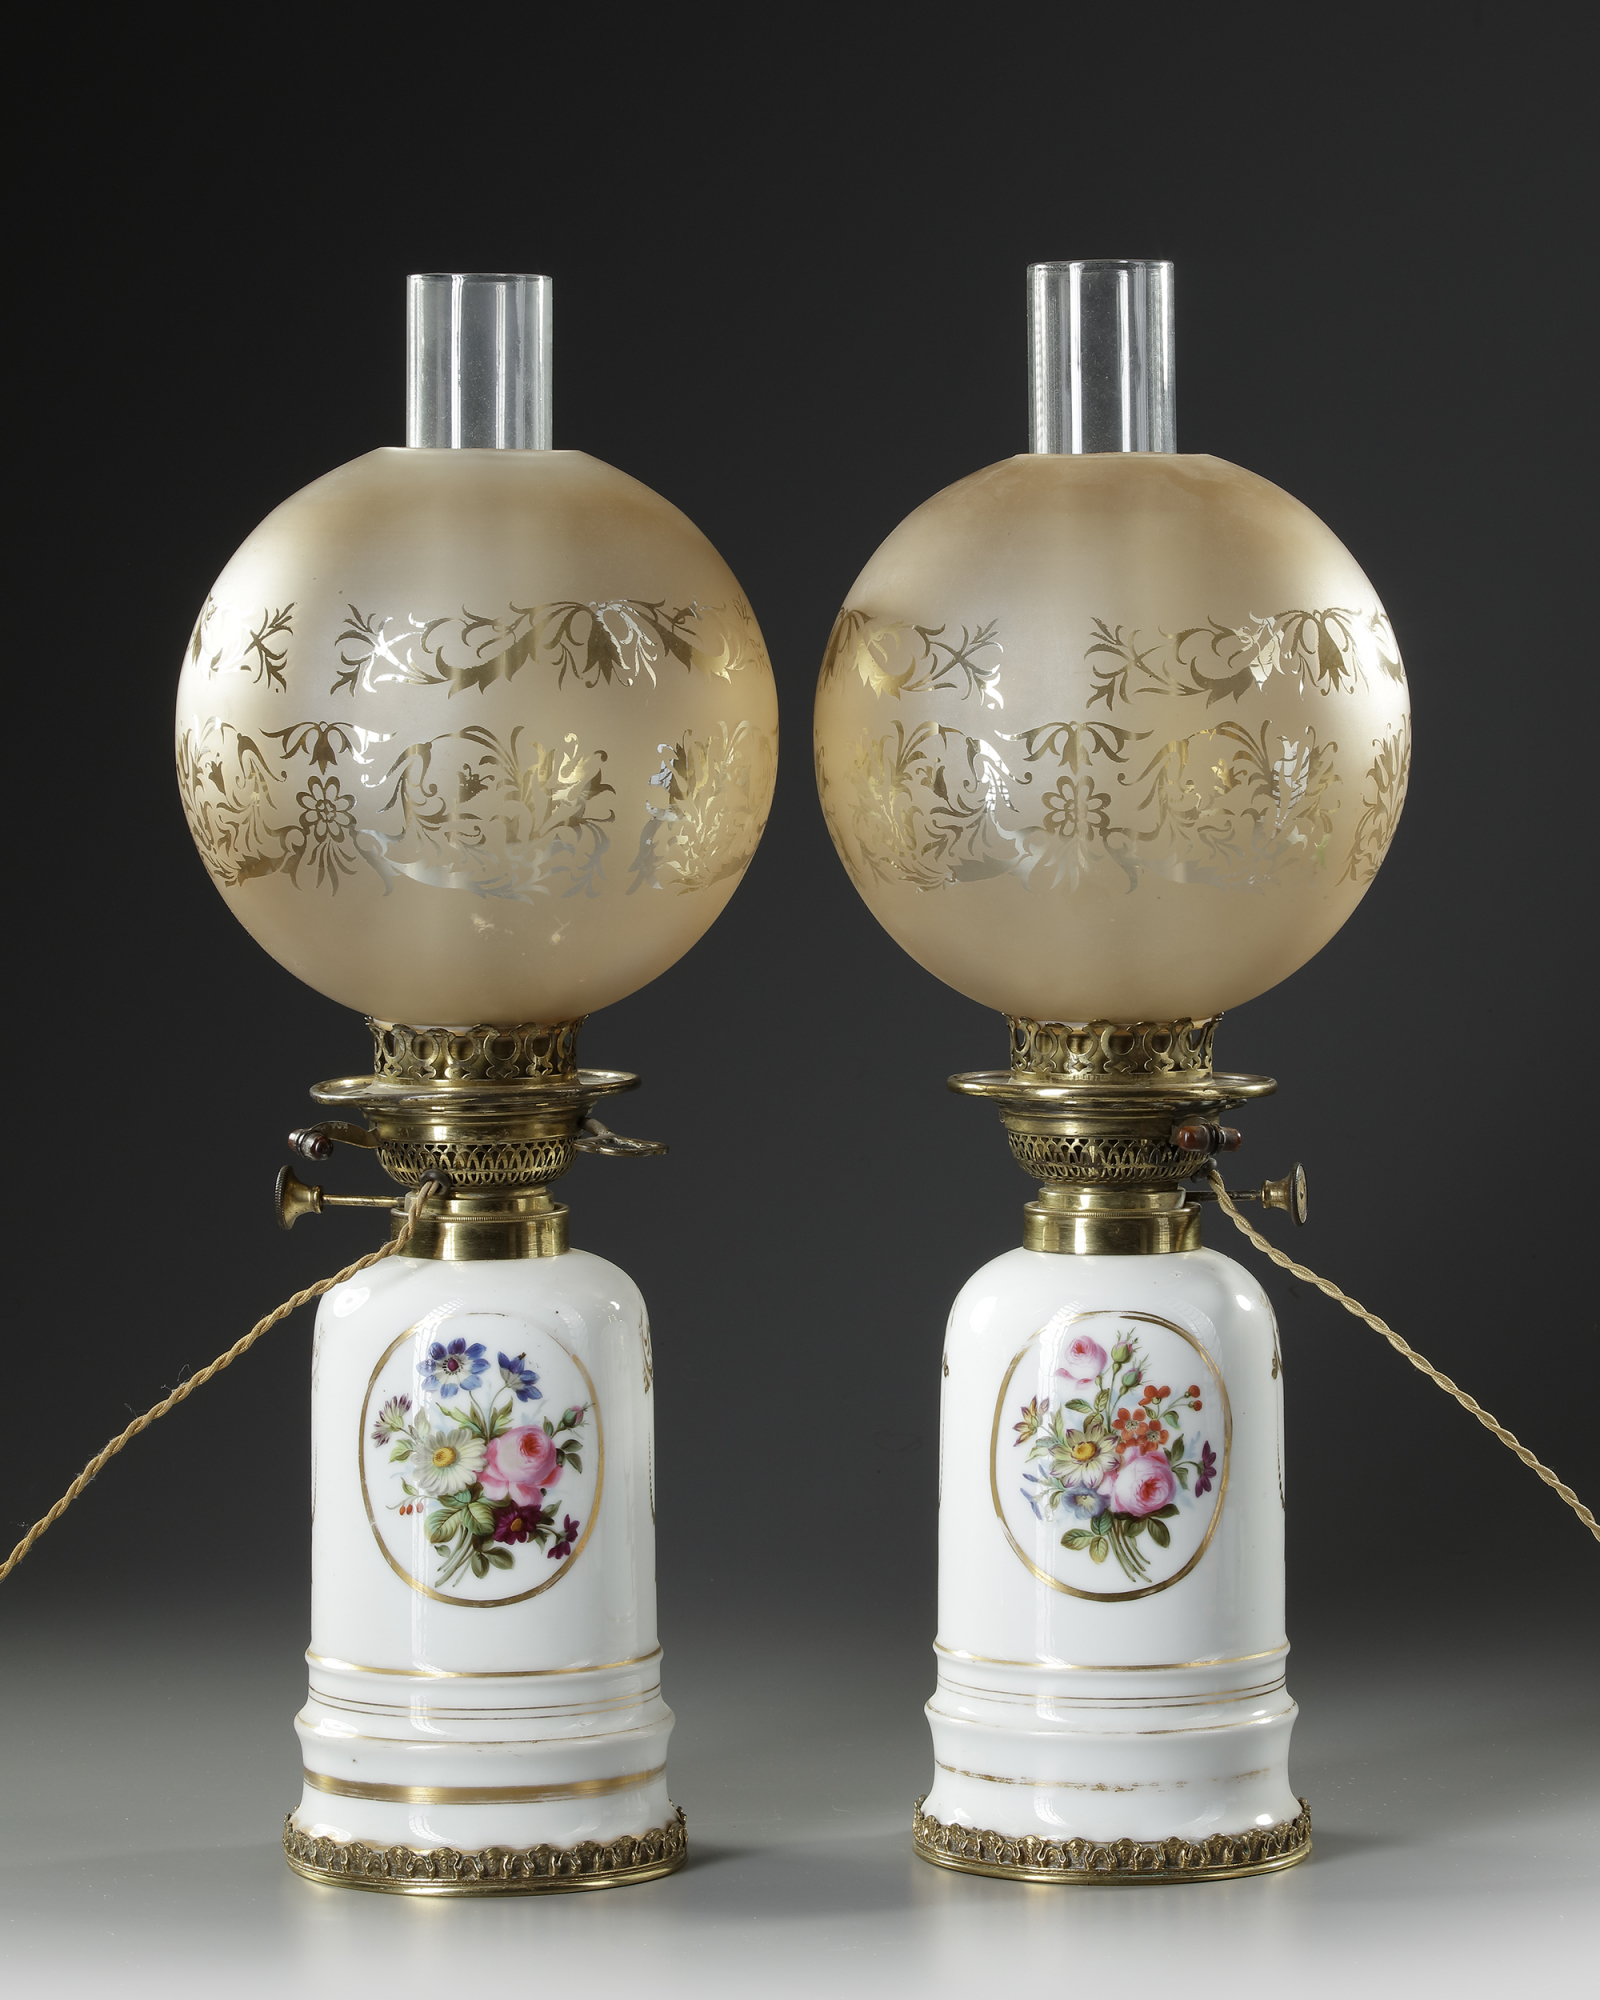 A PAIR OF WHITE PORCELAIN LAMPS, LATE 19TH CENTURY - Image 2 of 2